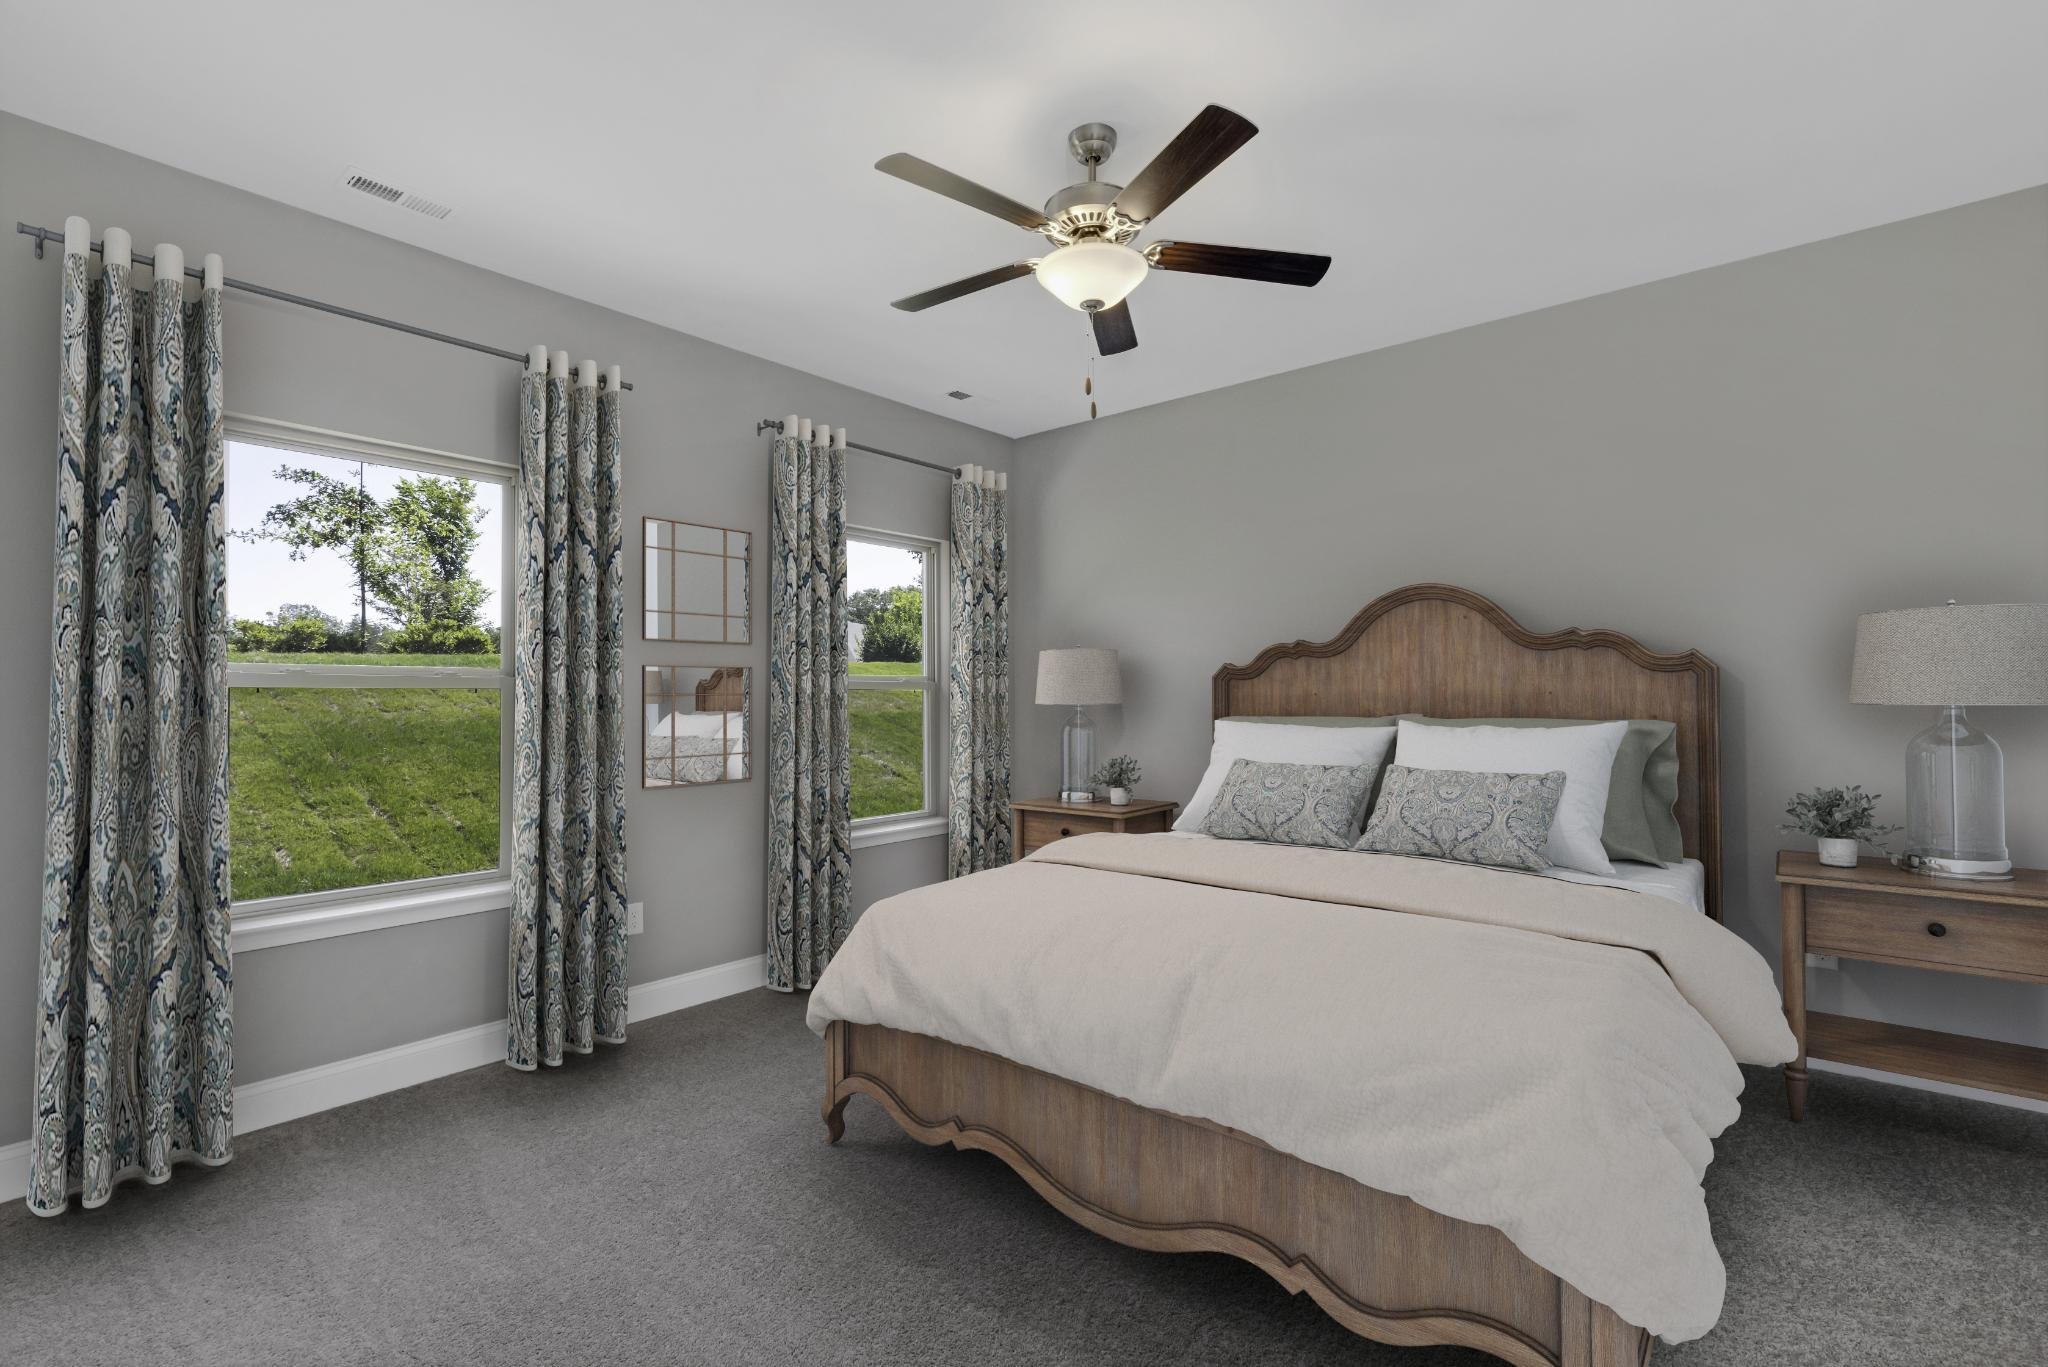 Bedroom featured in The Waverleigh Courtyard Cottage By Goodall Homes in Chattanooga, GA